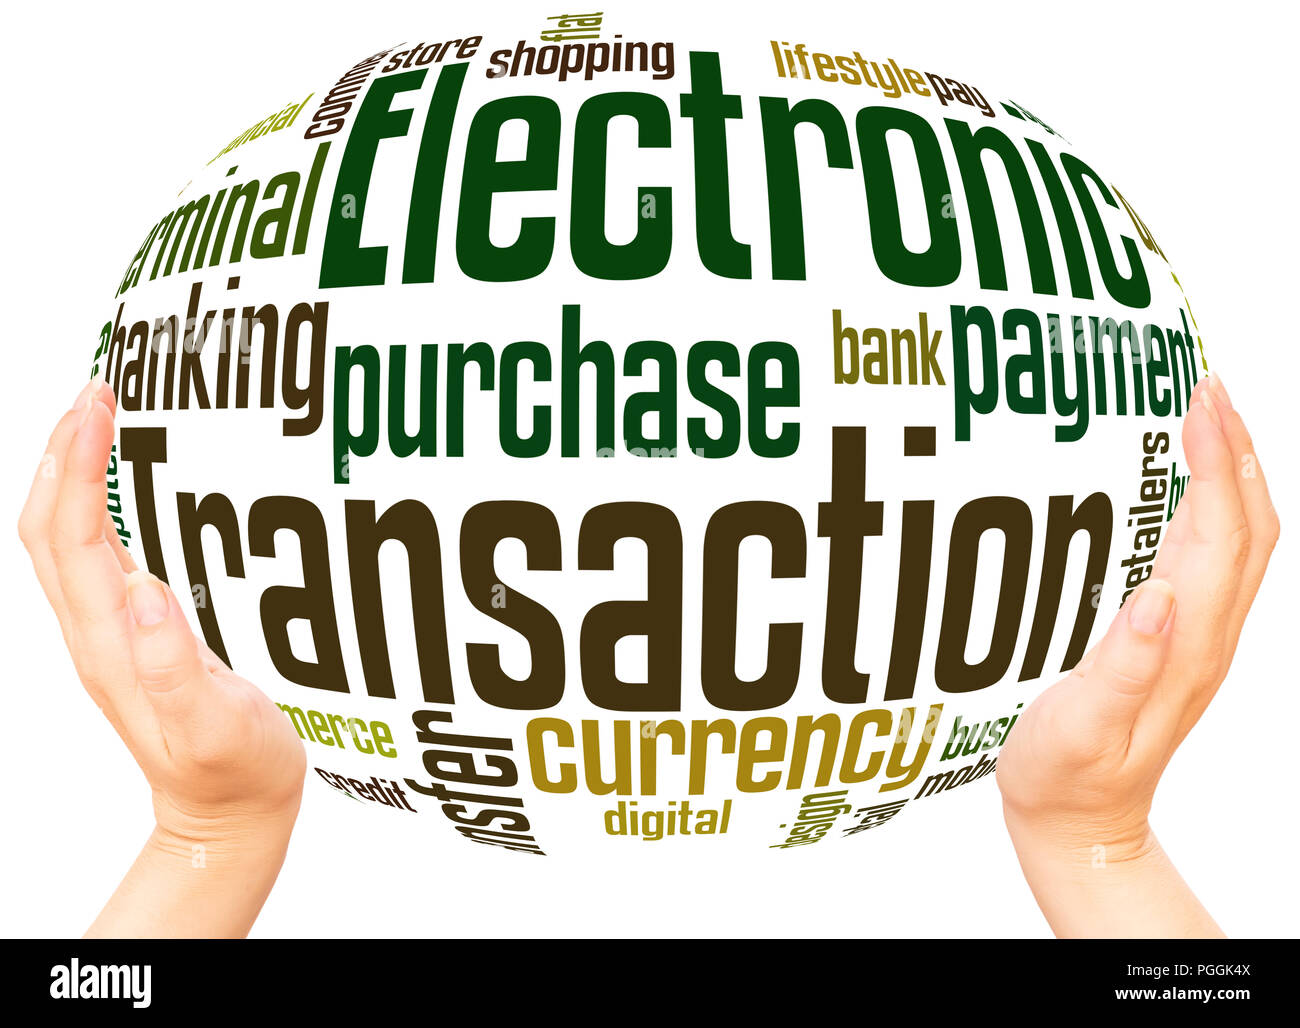 Electronic Transaction word cloud hand sphere concept on white background. - Stock Image